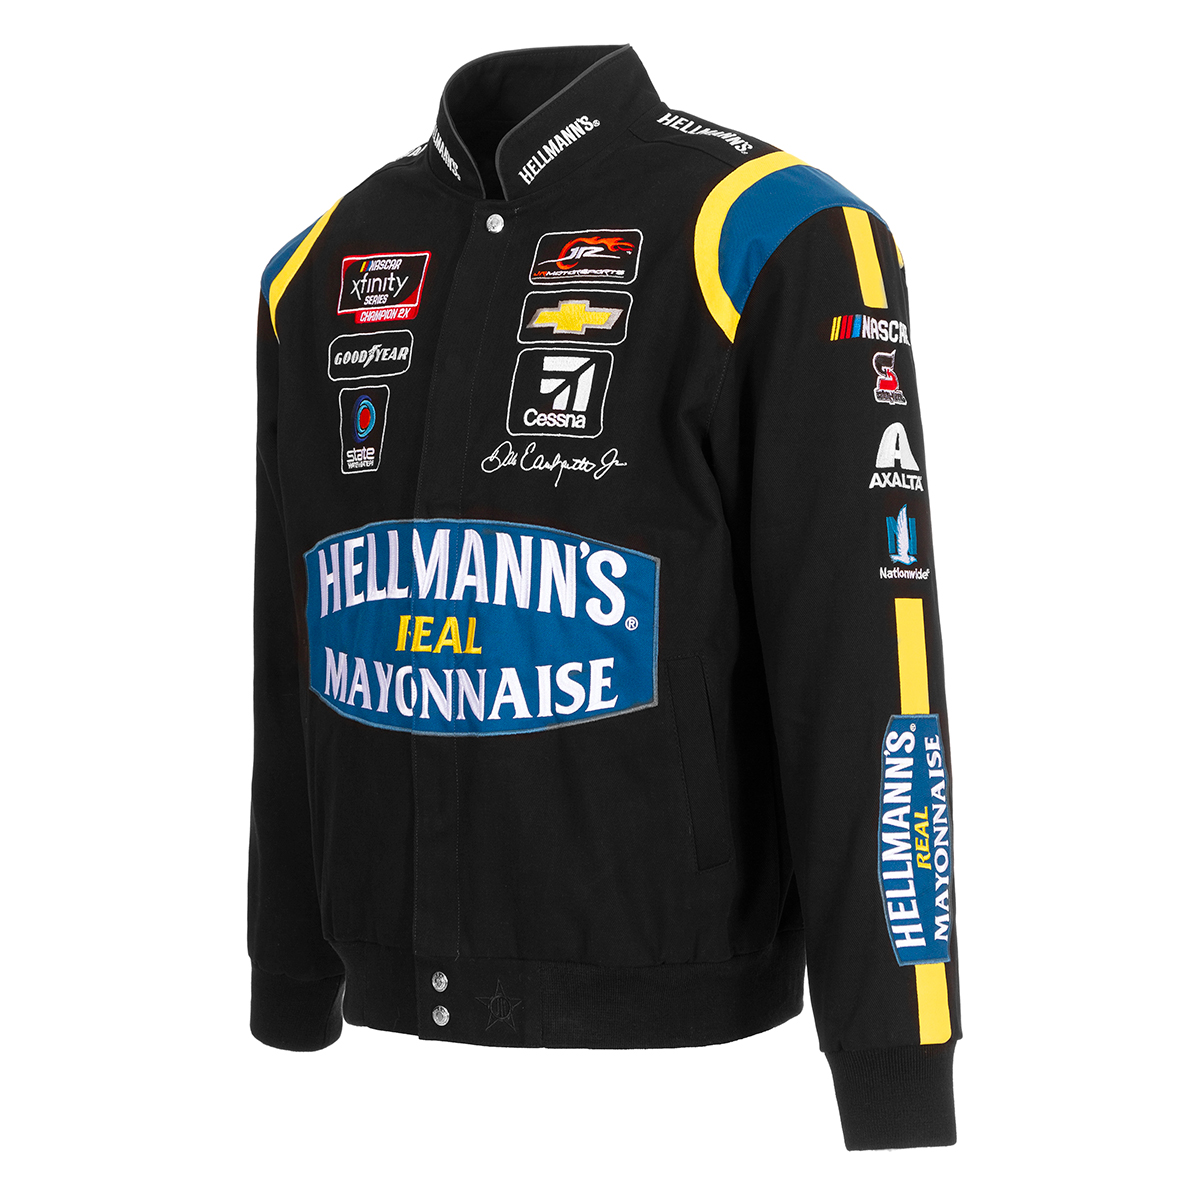 Dale Earnhardt Jr. #88 2019 Xfinity Hellmans Pit Jacket